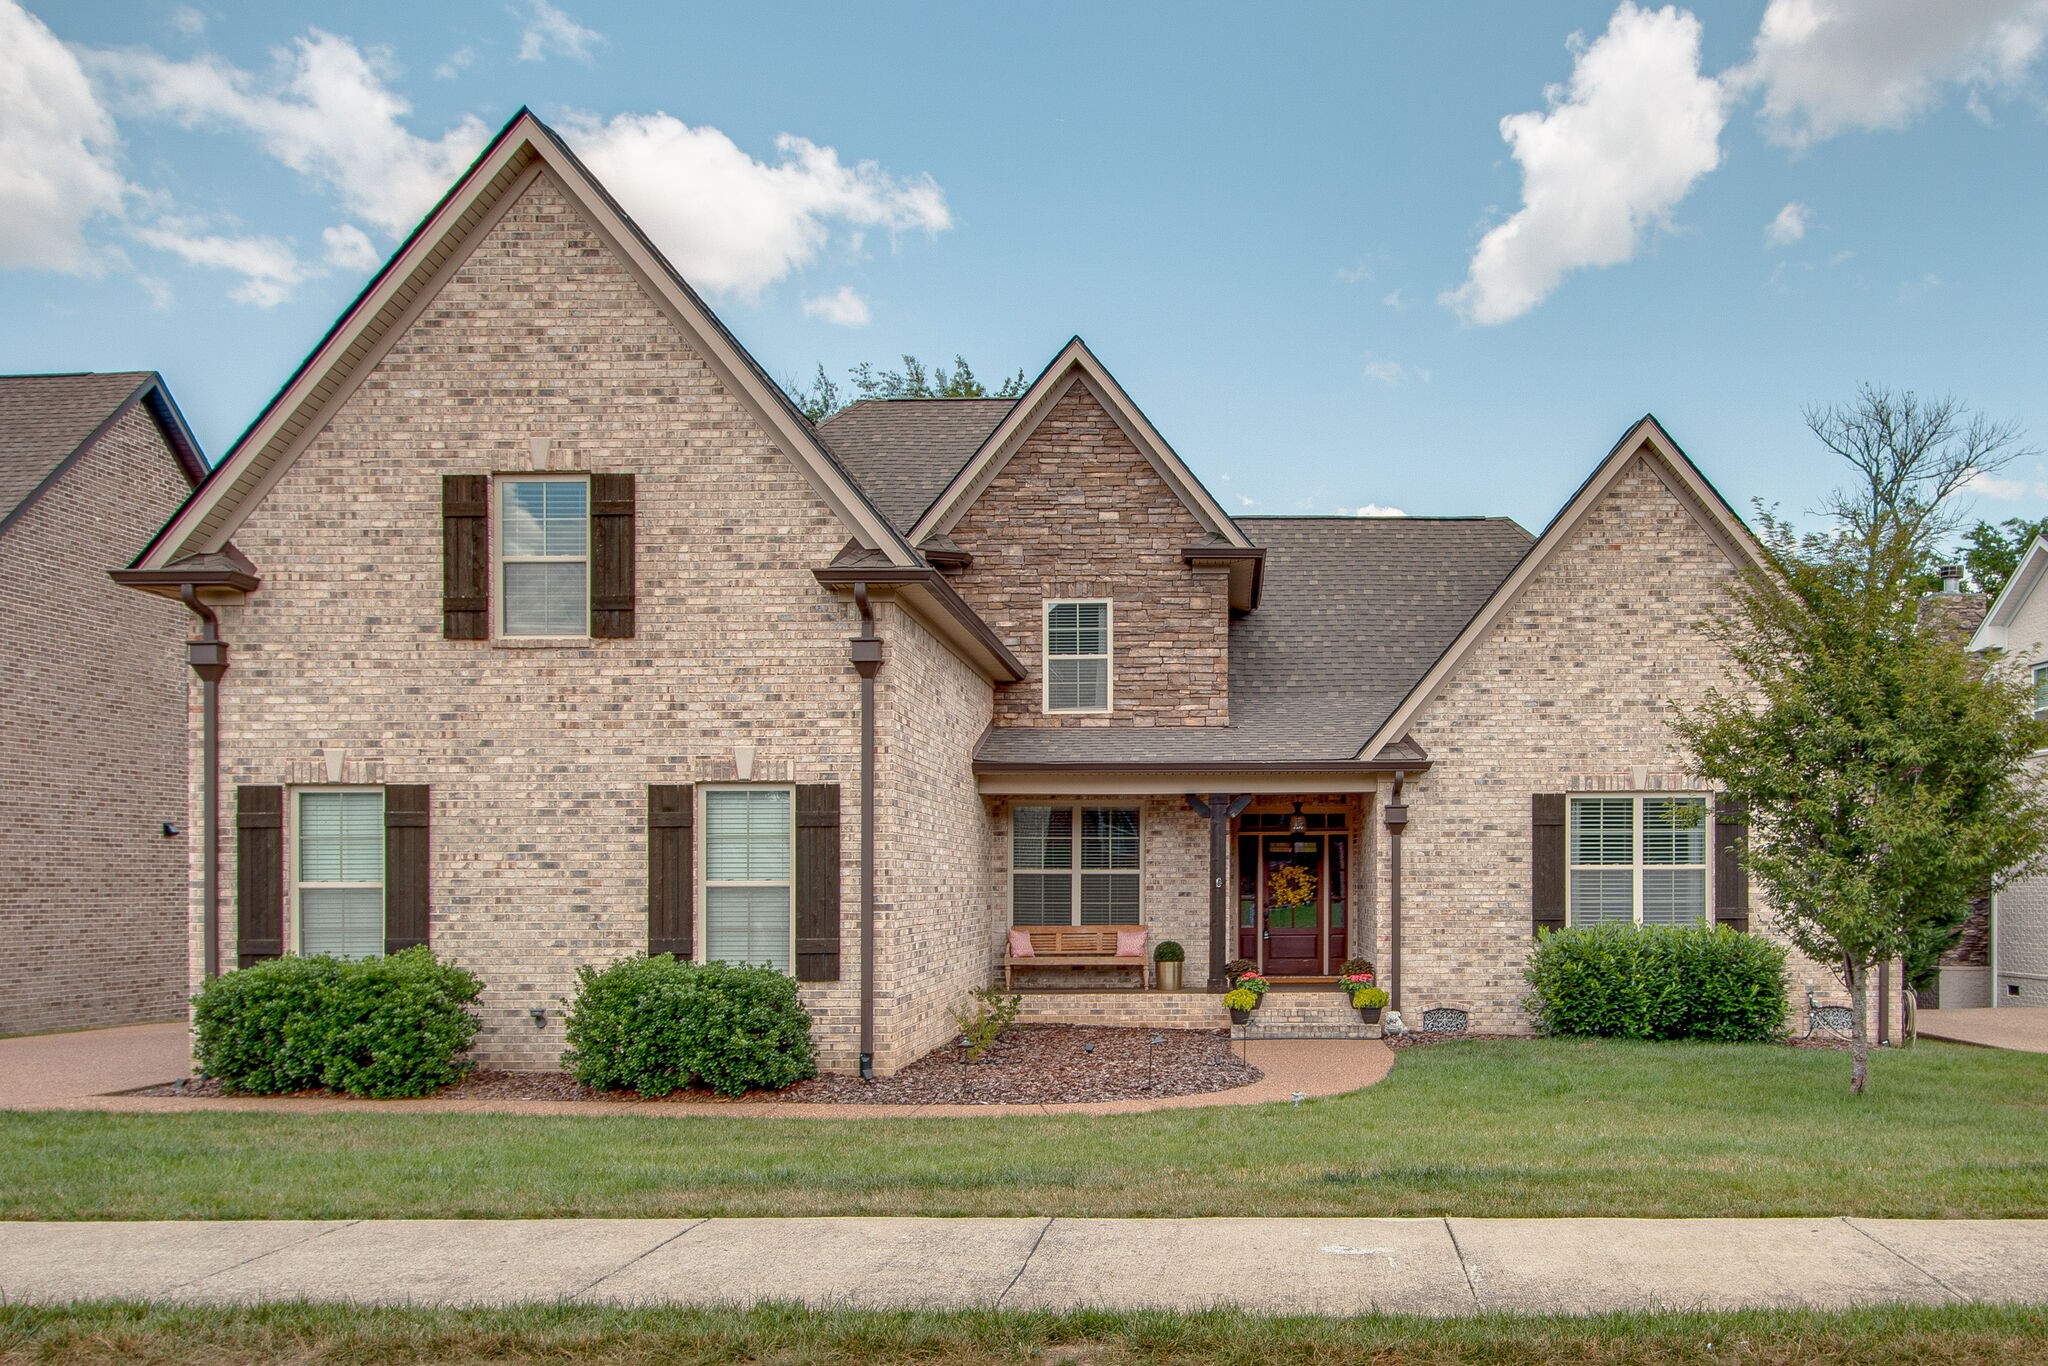 Fabulous! 5 Big BR (2 Down), all walk in closets, 2.5 Baths Down & 2 Up (All Tiled), Bonus w/bar, Vaulted Great Room, Hearth Room off of Great Big Kitchen w/ 6 seat Stone Wrapped Island, Breakfast Nook, Built-in Appliances, New Air Down, New Roof, New custom lighting, Huge Master Suite w/Stunning Master Bath w/ Wrap Around Shower,. Beautiful Private Treed Yard, Covered Patio, Trex Double Deck, Patio, Fenced